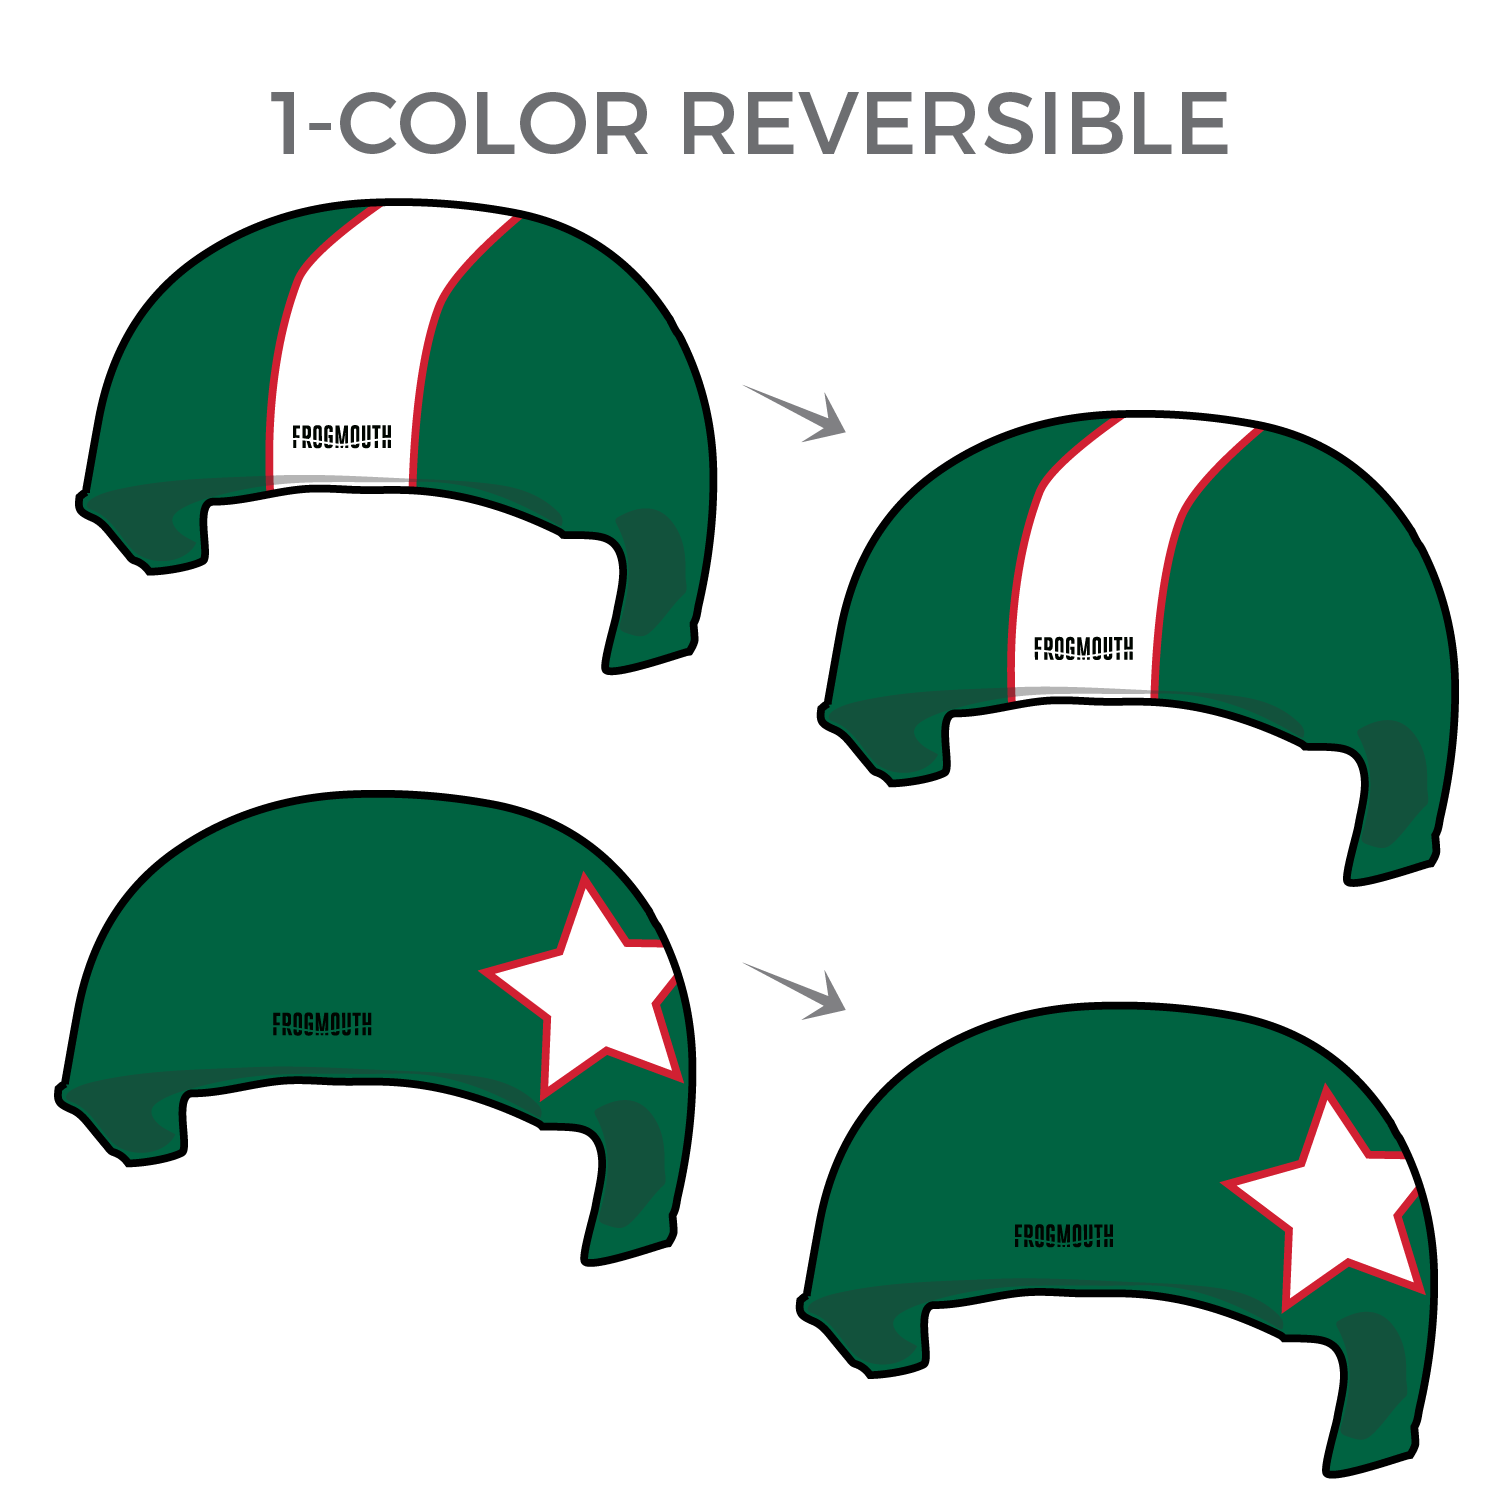 52920c293 Team Mexico  Pair of 2018 World Cup 1-Color Reversible Helmet Covers ...